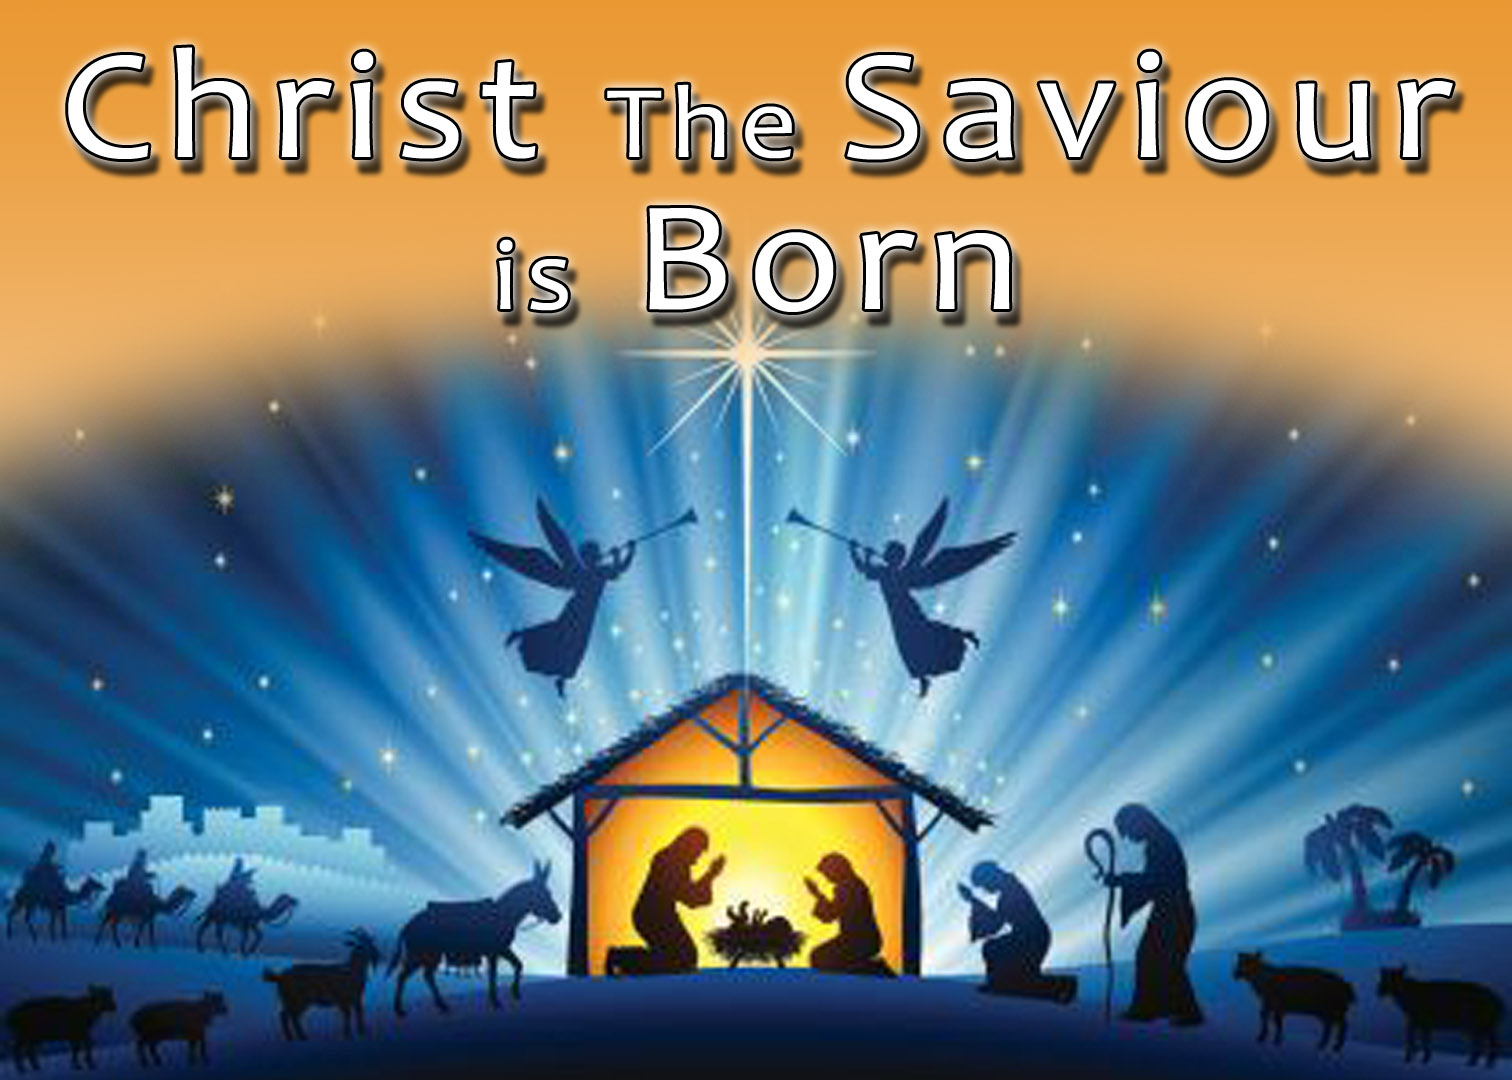 CHRIST THE SAVIOUR IS BORN (12-25-18)